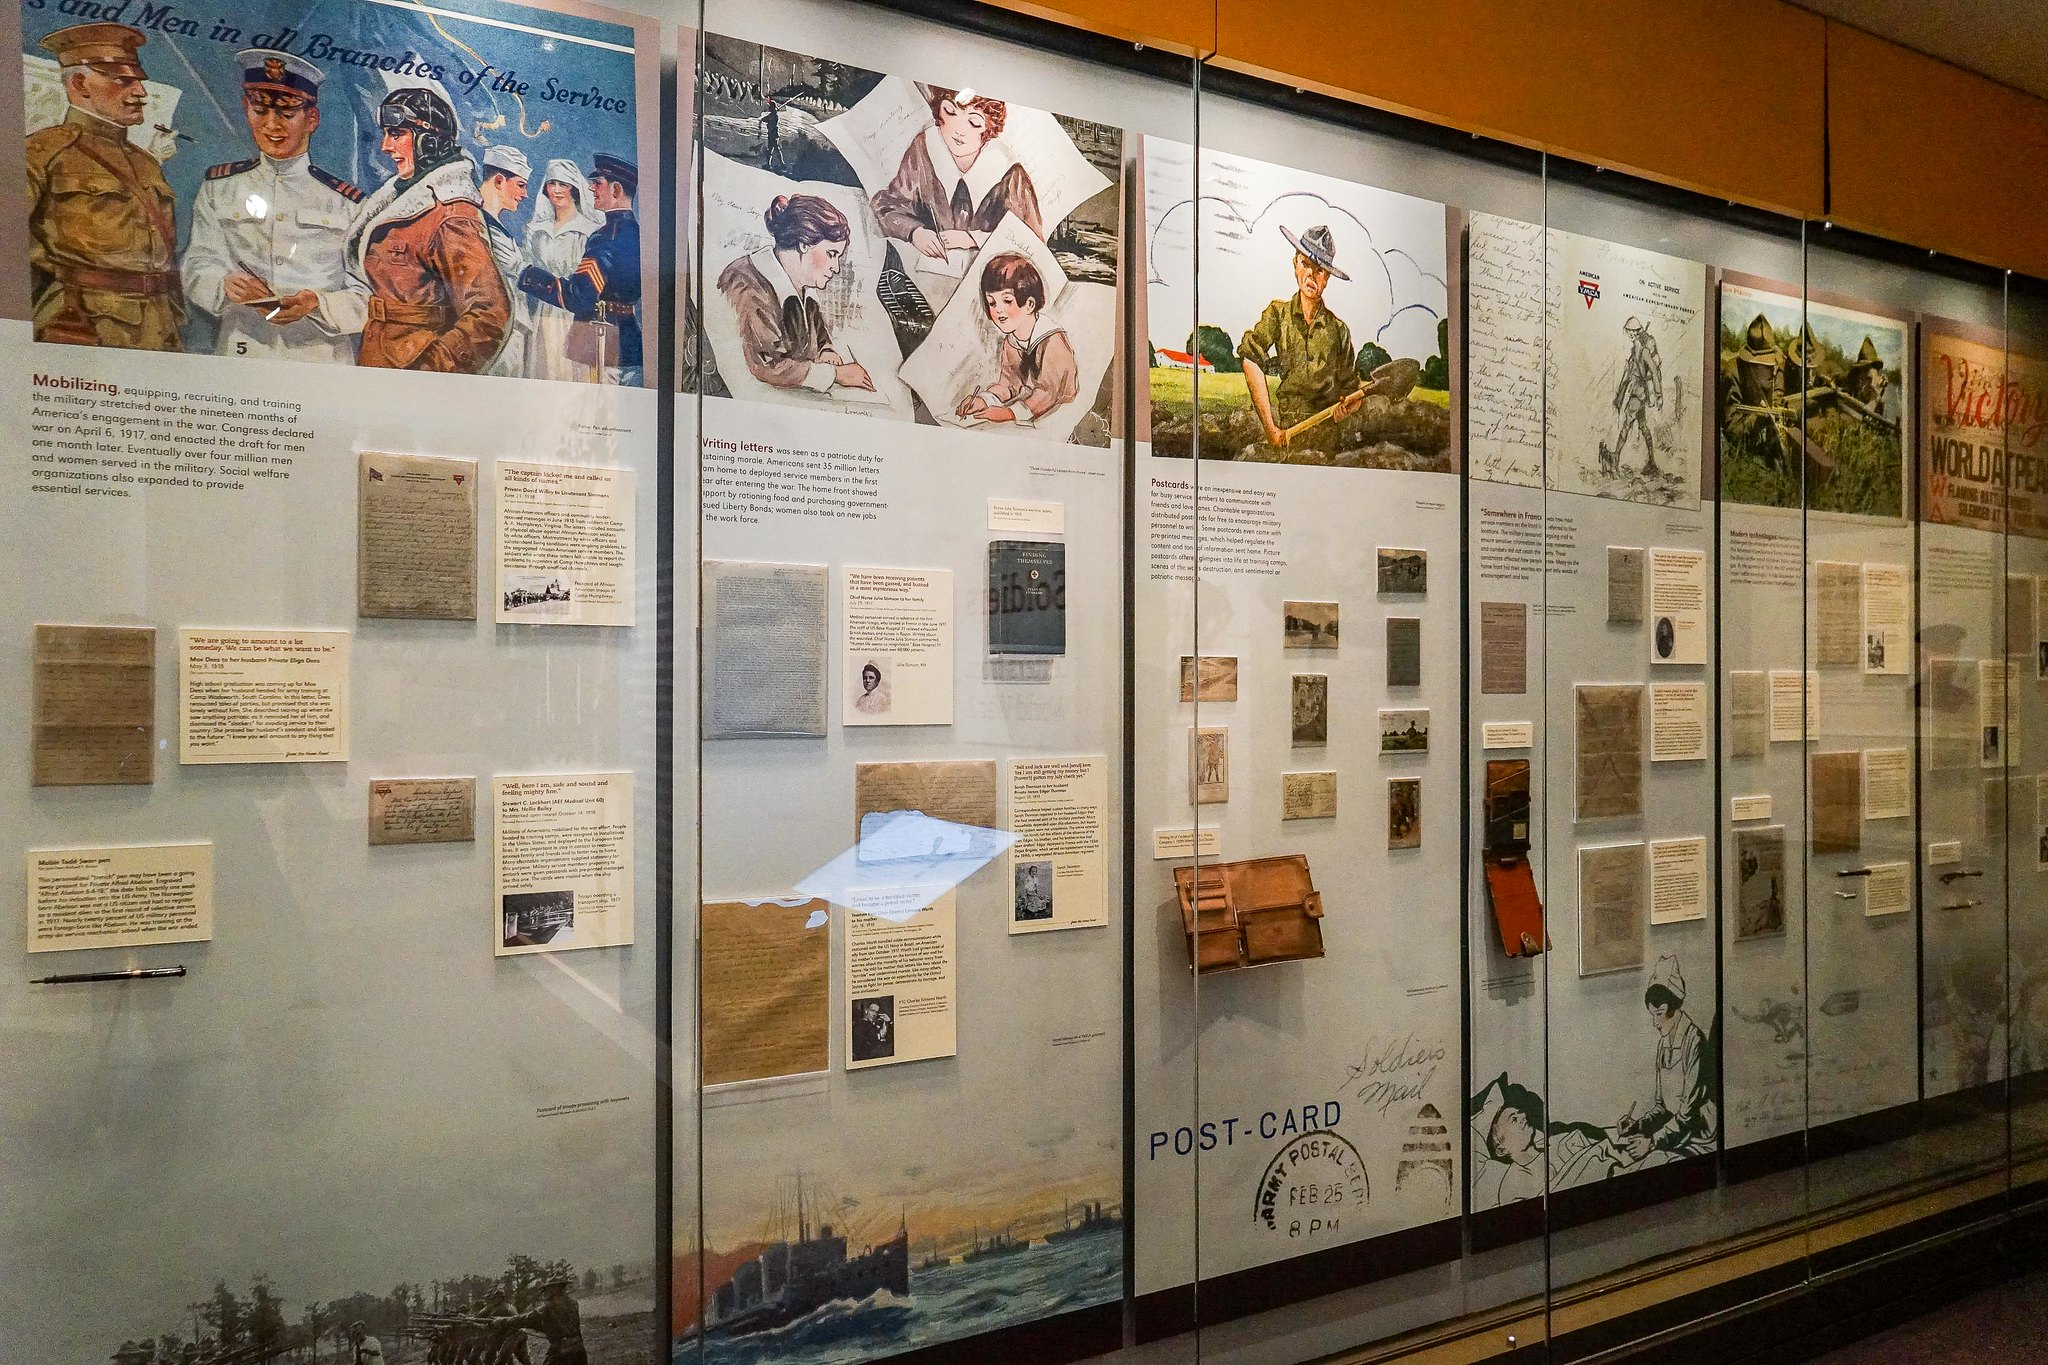 Letters from World War I exhibit at the Smithsonian National Postal Museum in Washington, D.C. Photo taken on April 4, 2017.